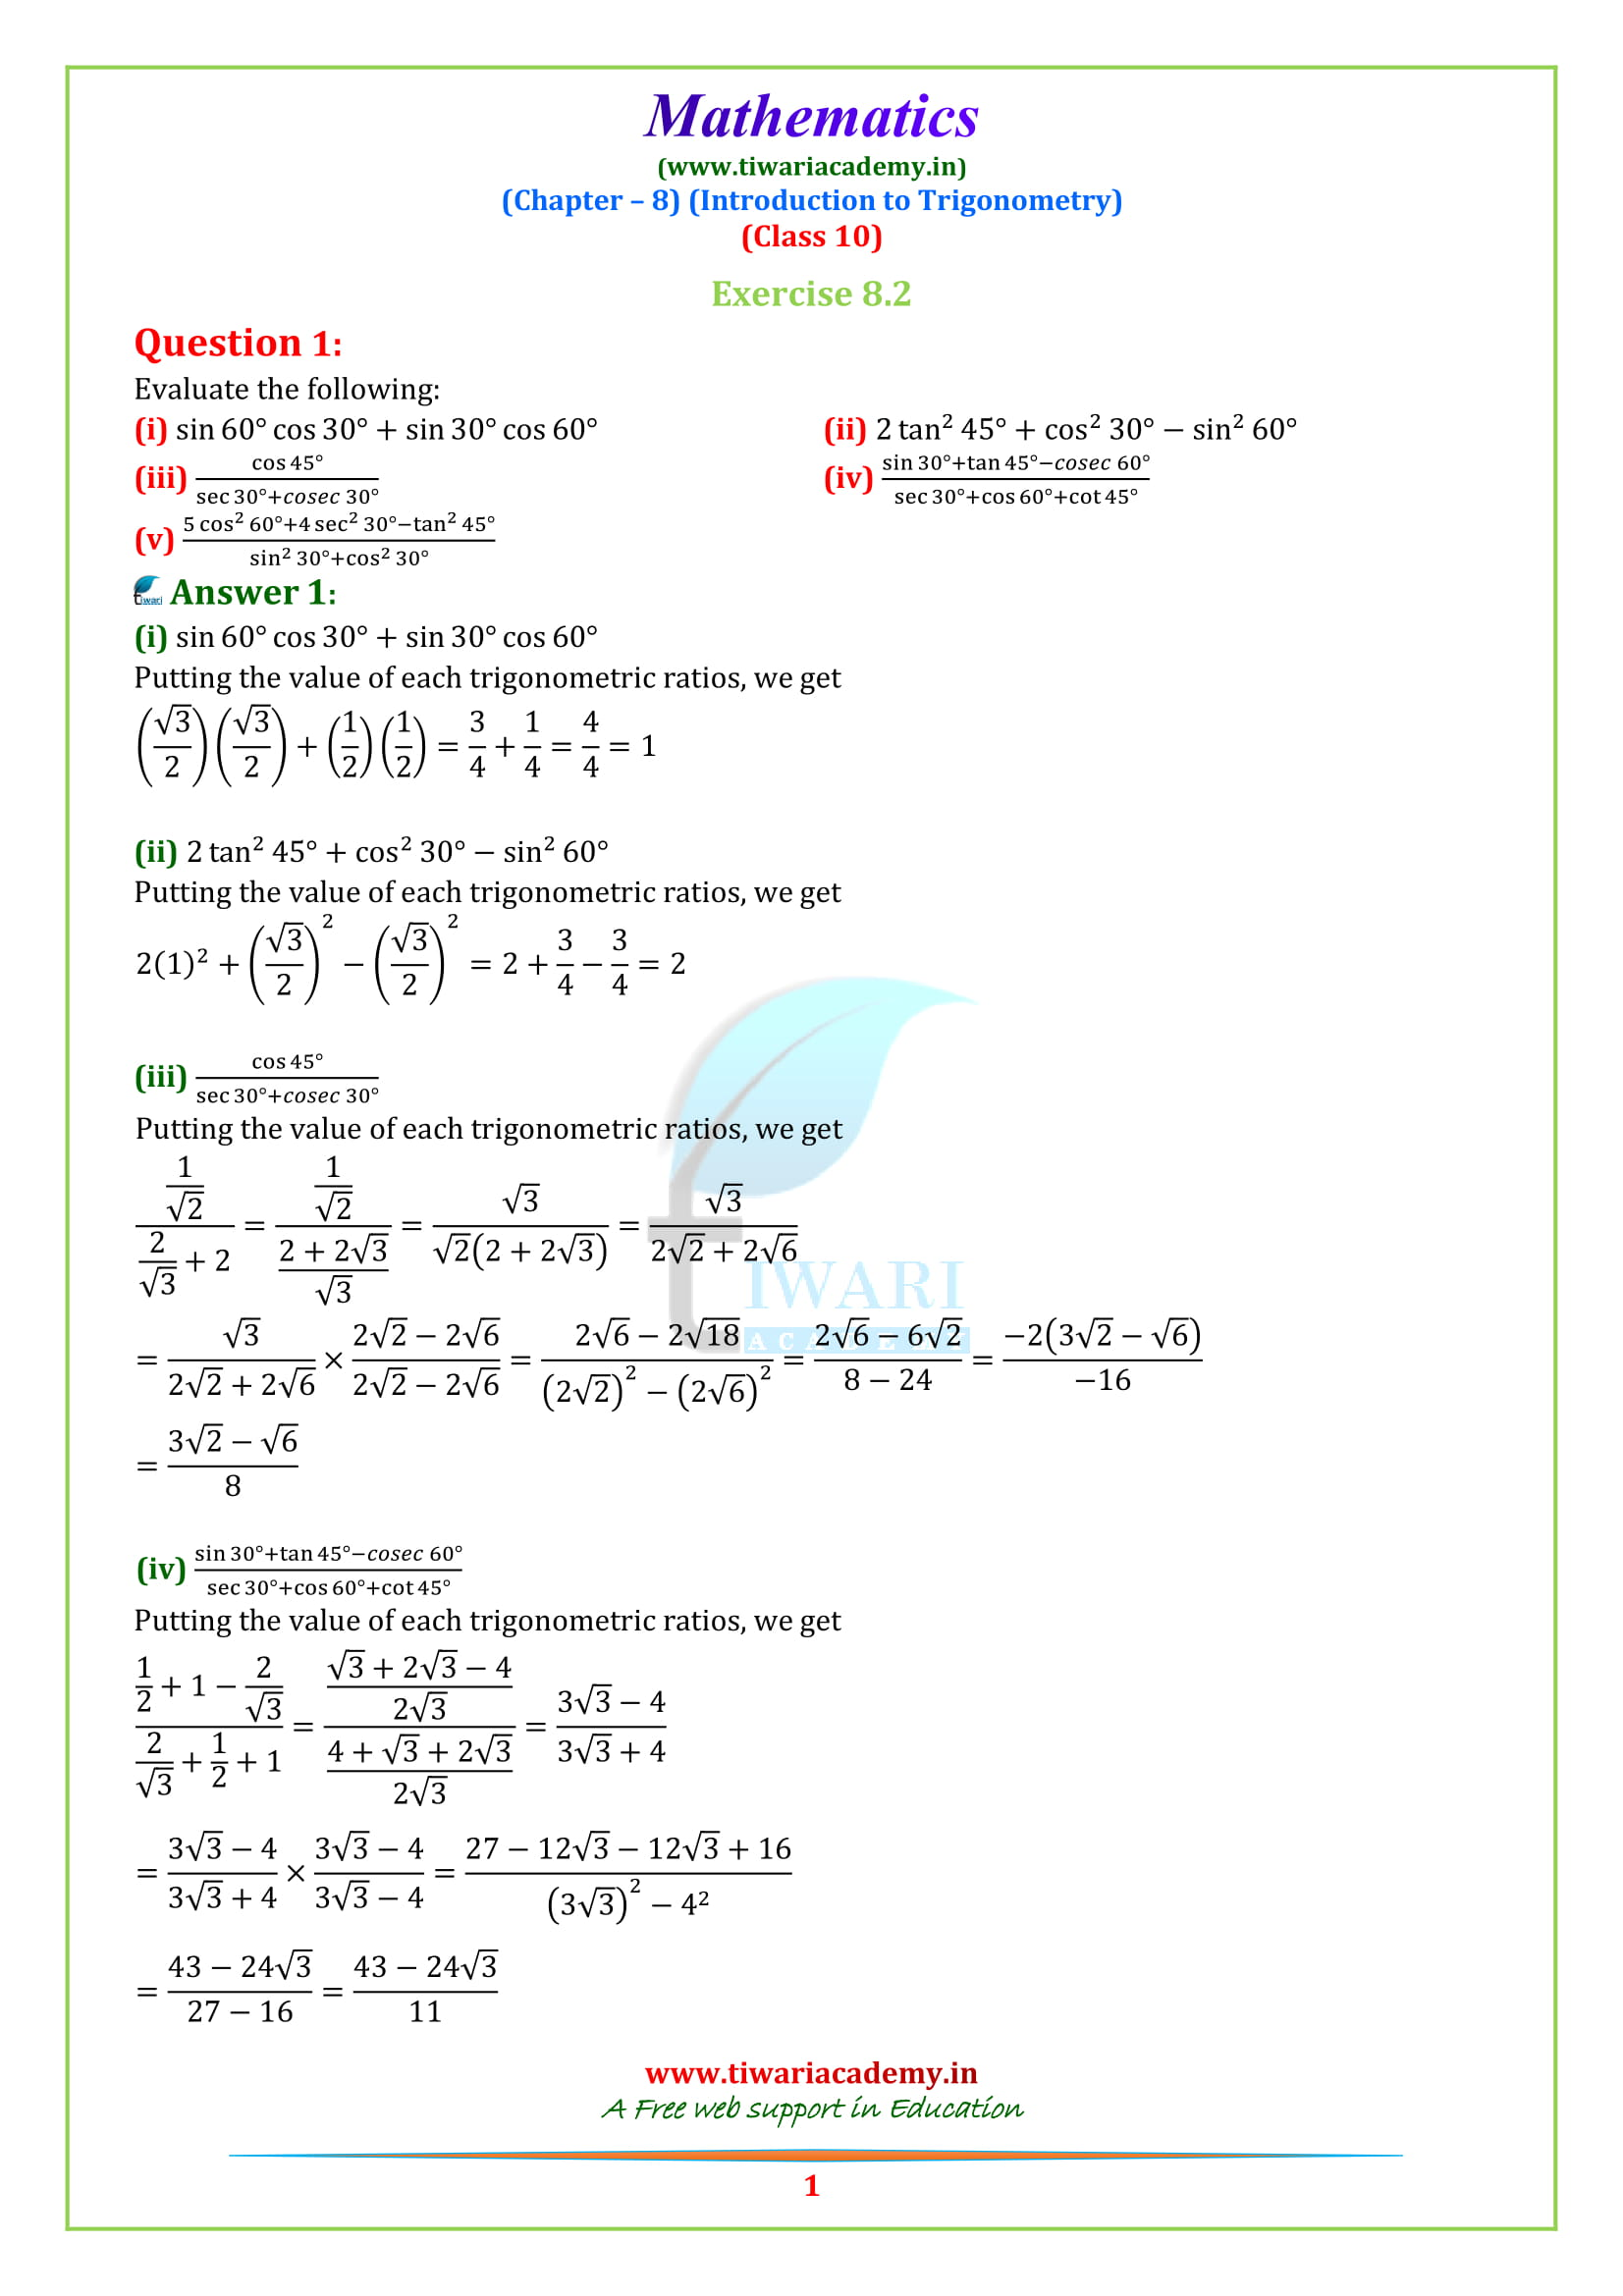 NCERT Solutions for Class 10 Maths Chapter 8 Exercise 8.2